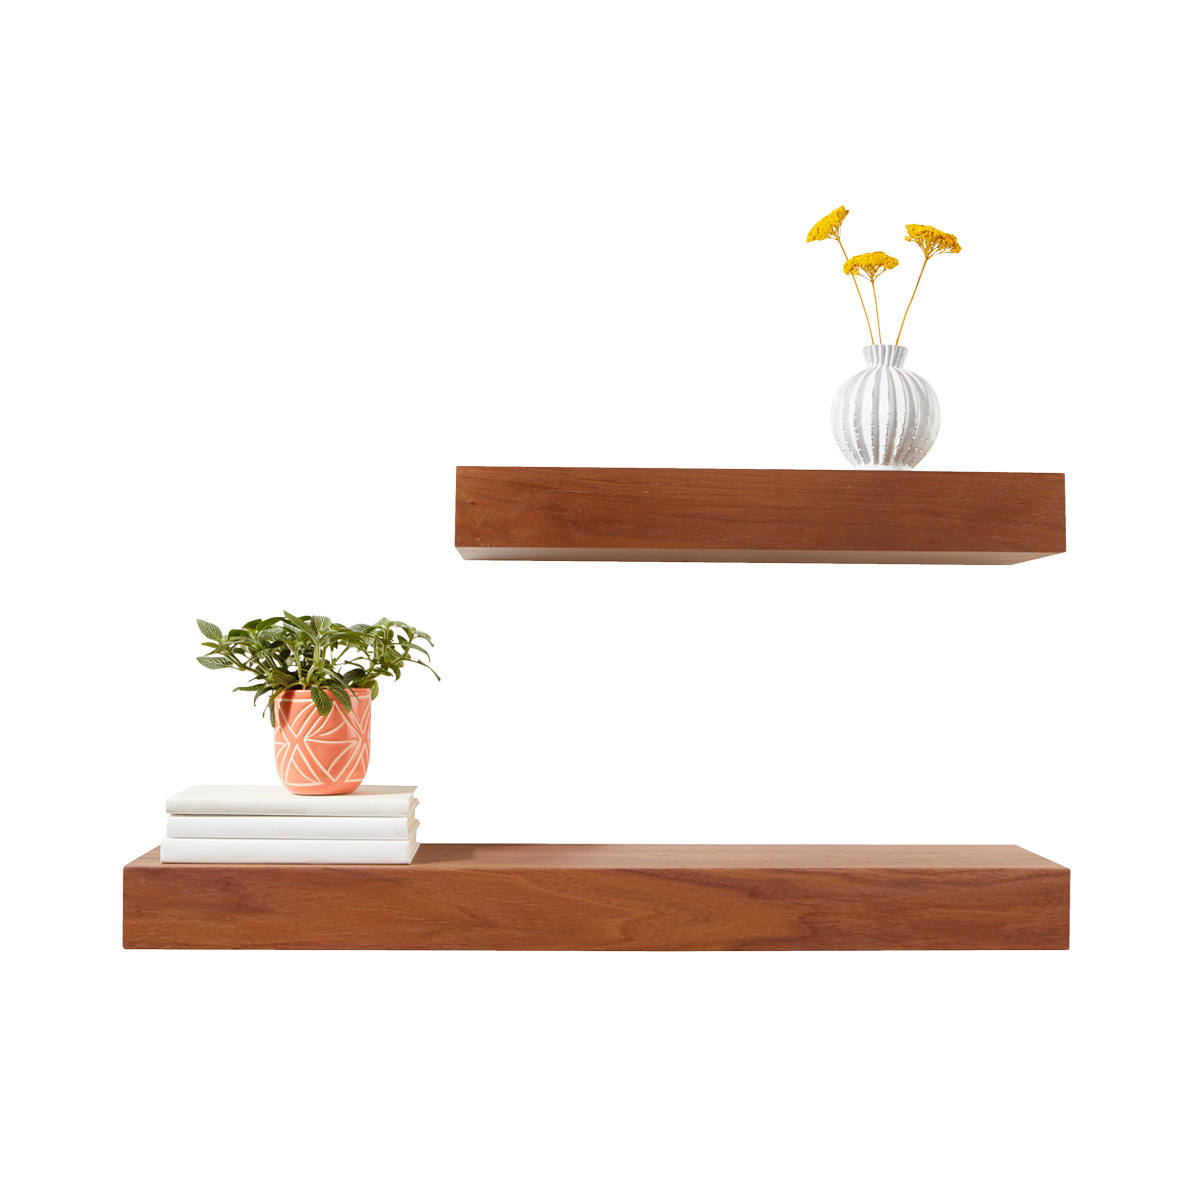 walnut floating shelves the container store rh containerstore com floating shelves pictures ikea floating shelves images